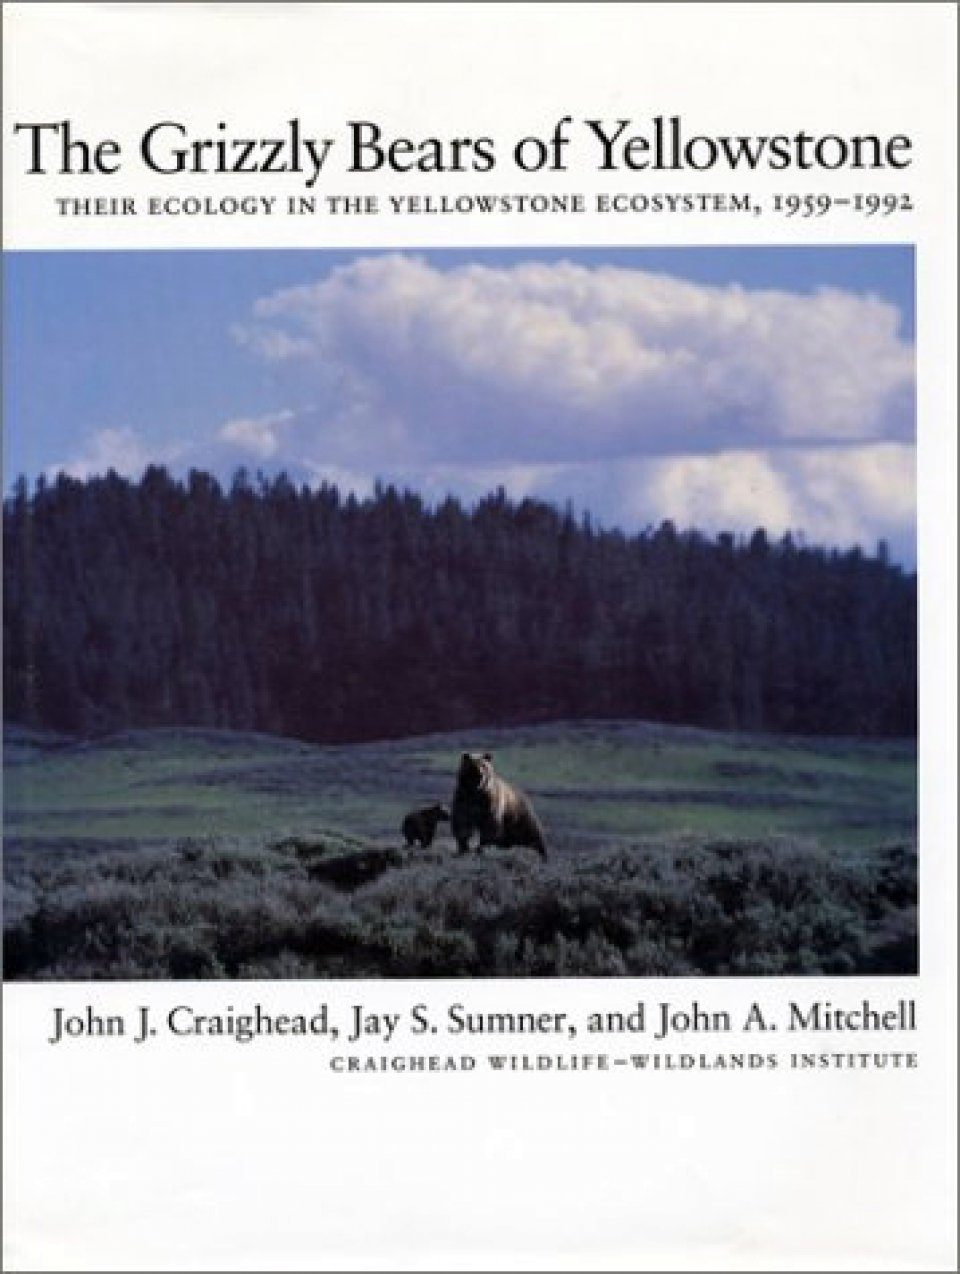 The Grizzly Bears of Yellowstone